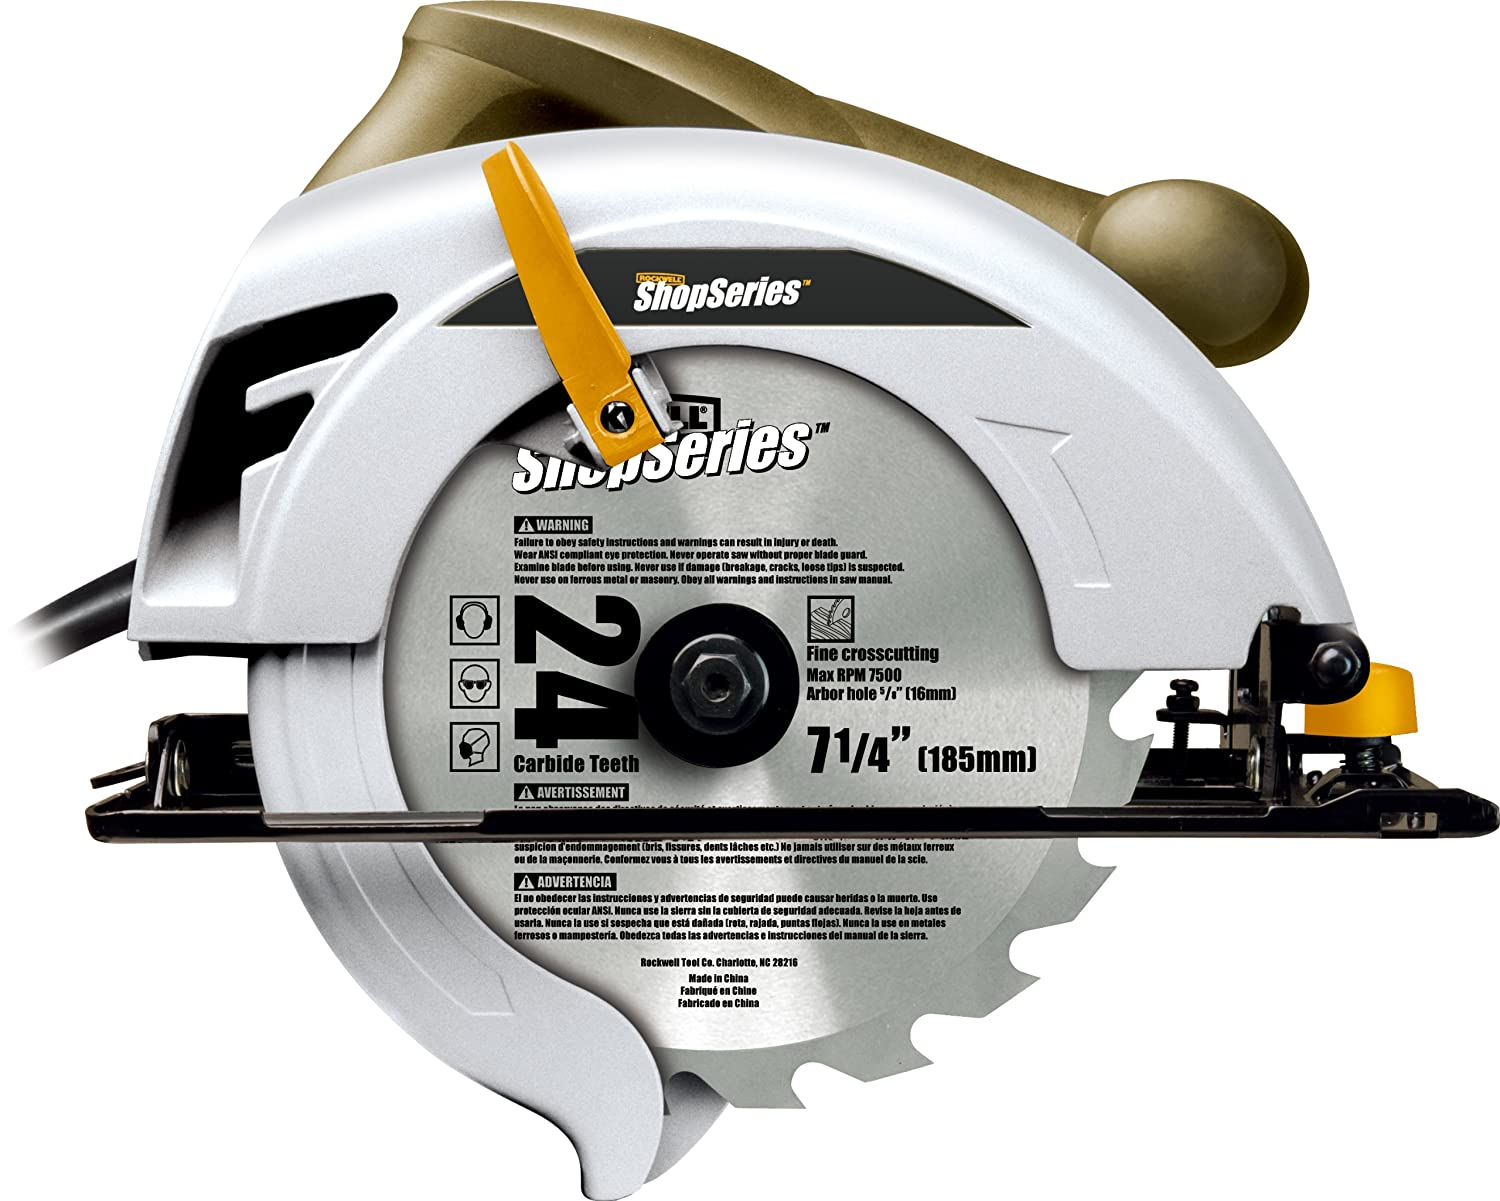 Rockwell shopseries rc3439 12 amp 7 14 inch circular saw power rockwell shopseries rc3439 12 amp 7 14 inch circular saw power circular saws amazon keyboard keysfo Image collections